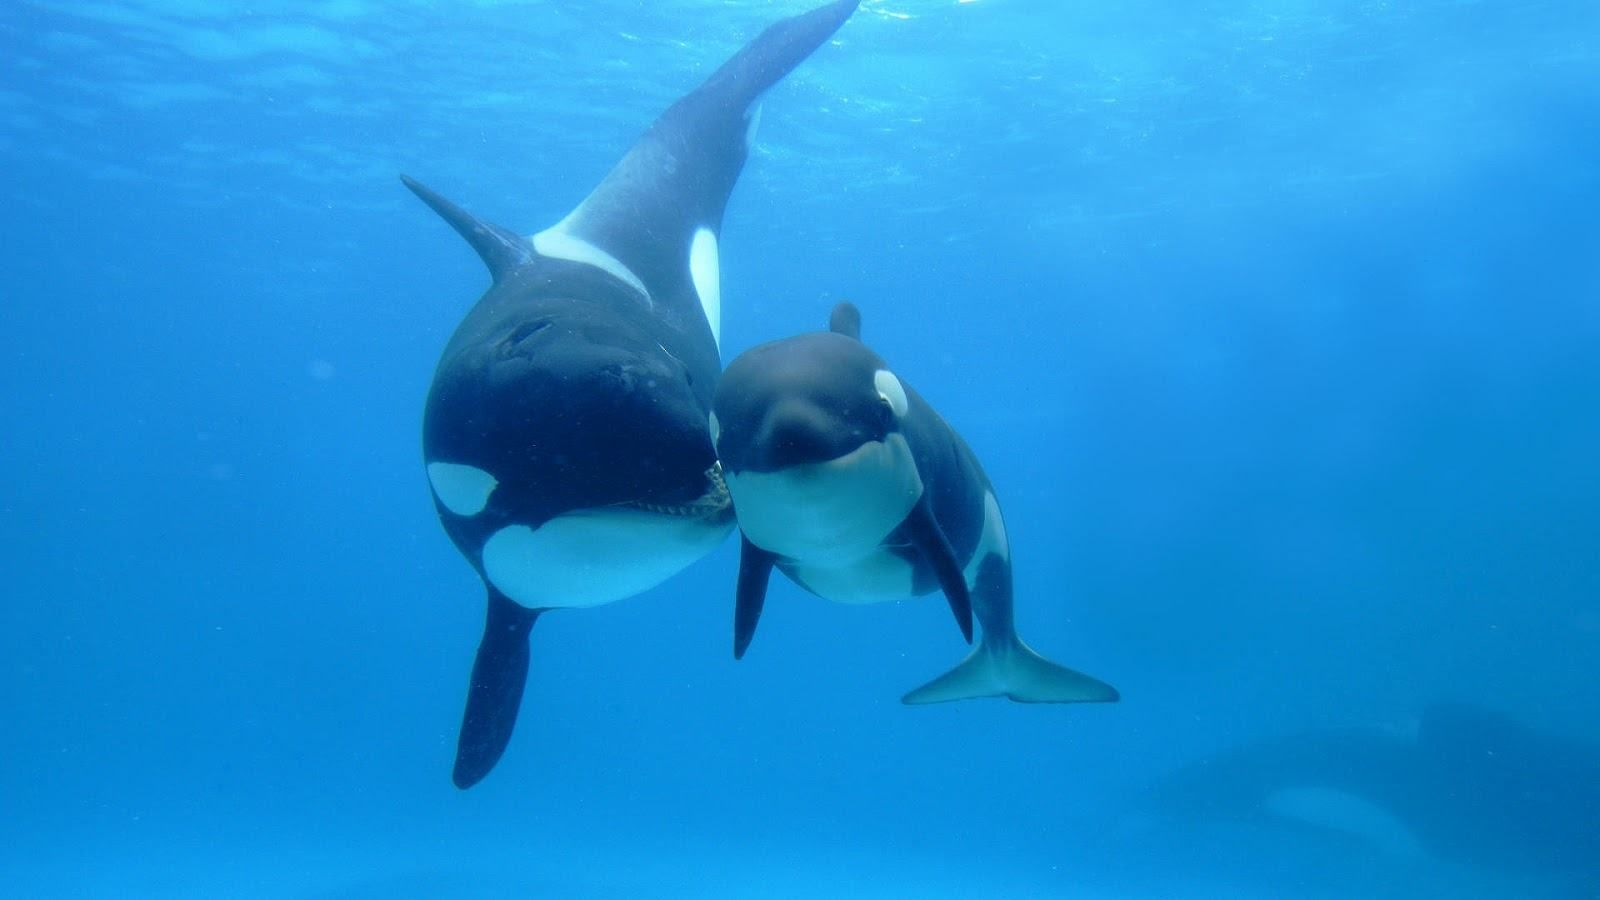 Download mobile wallpaper animals landscape sea killer whales pictures of killer whales wallpapers wallpapers adorable wallpapers altavistaventures Images